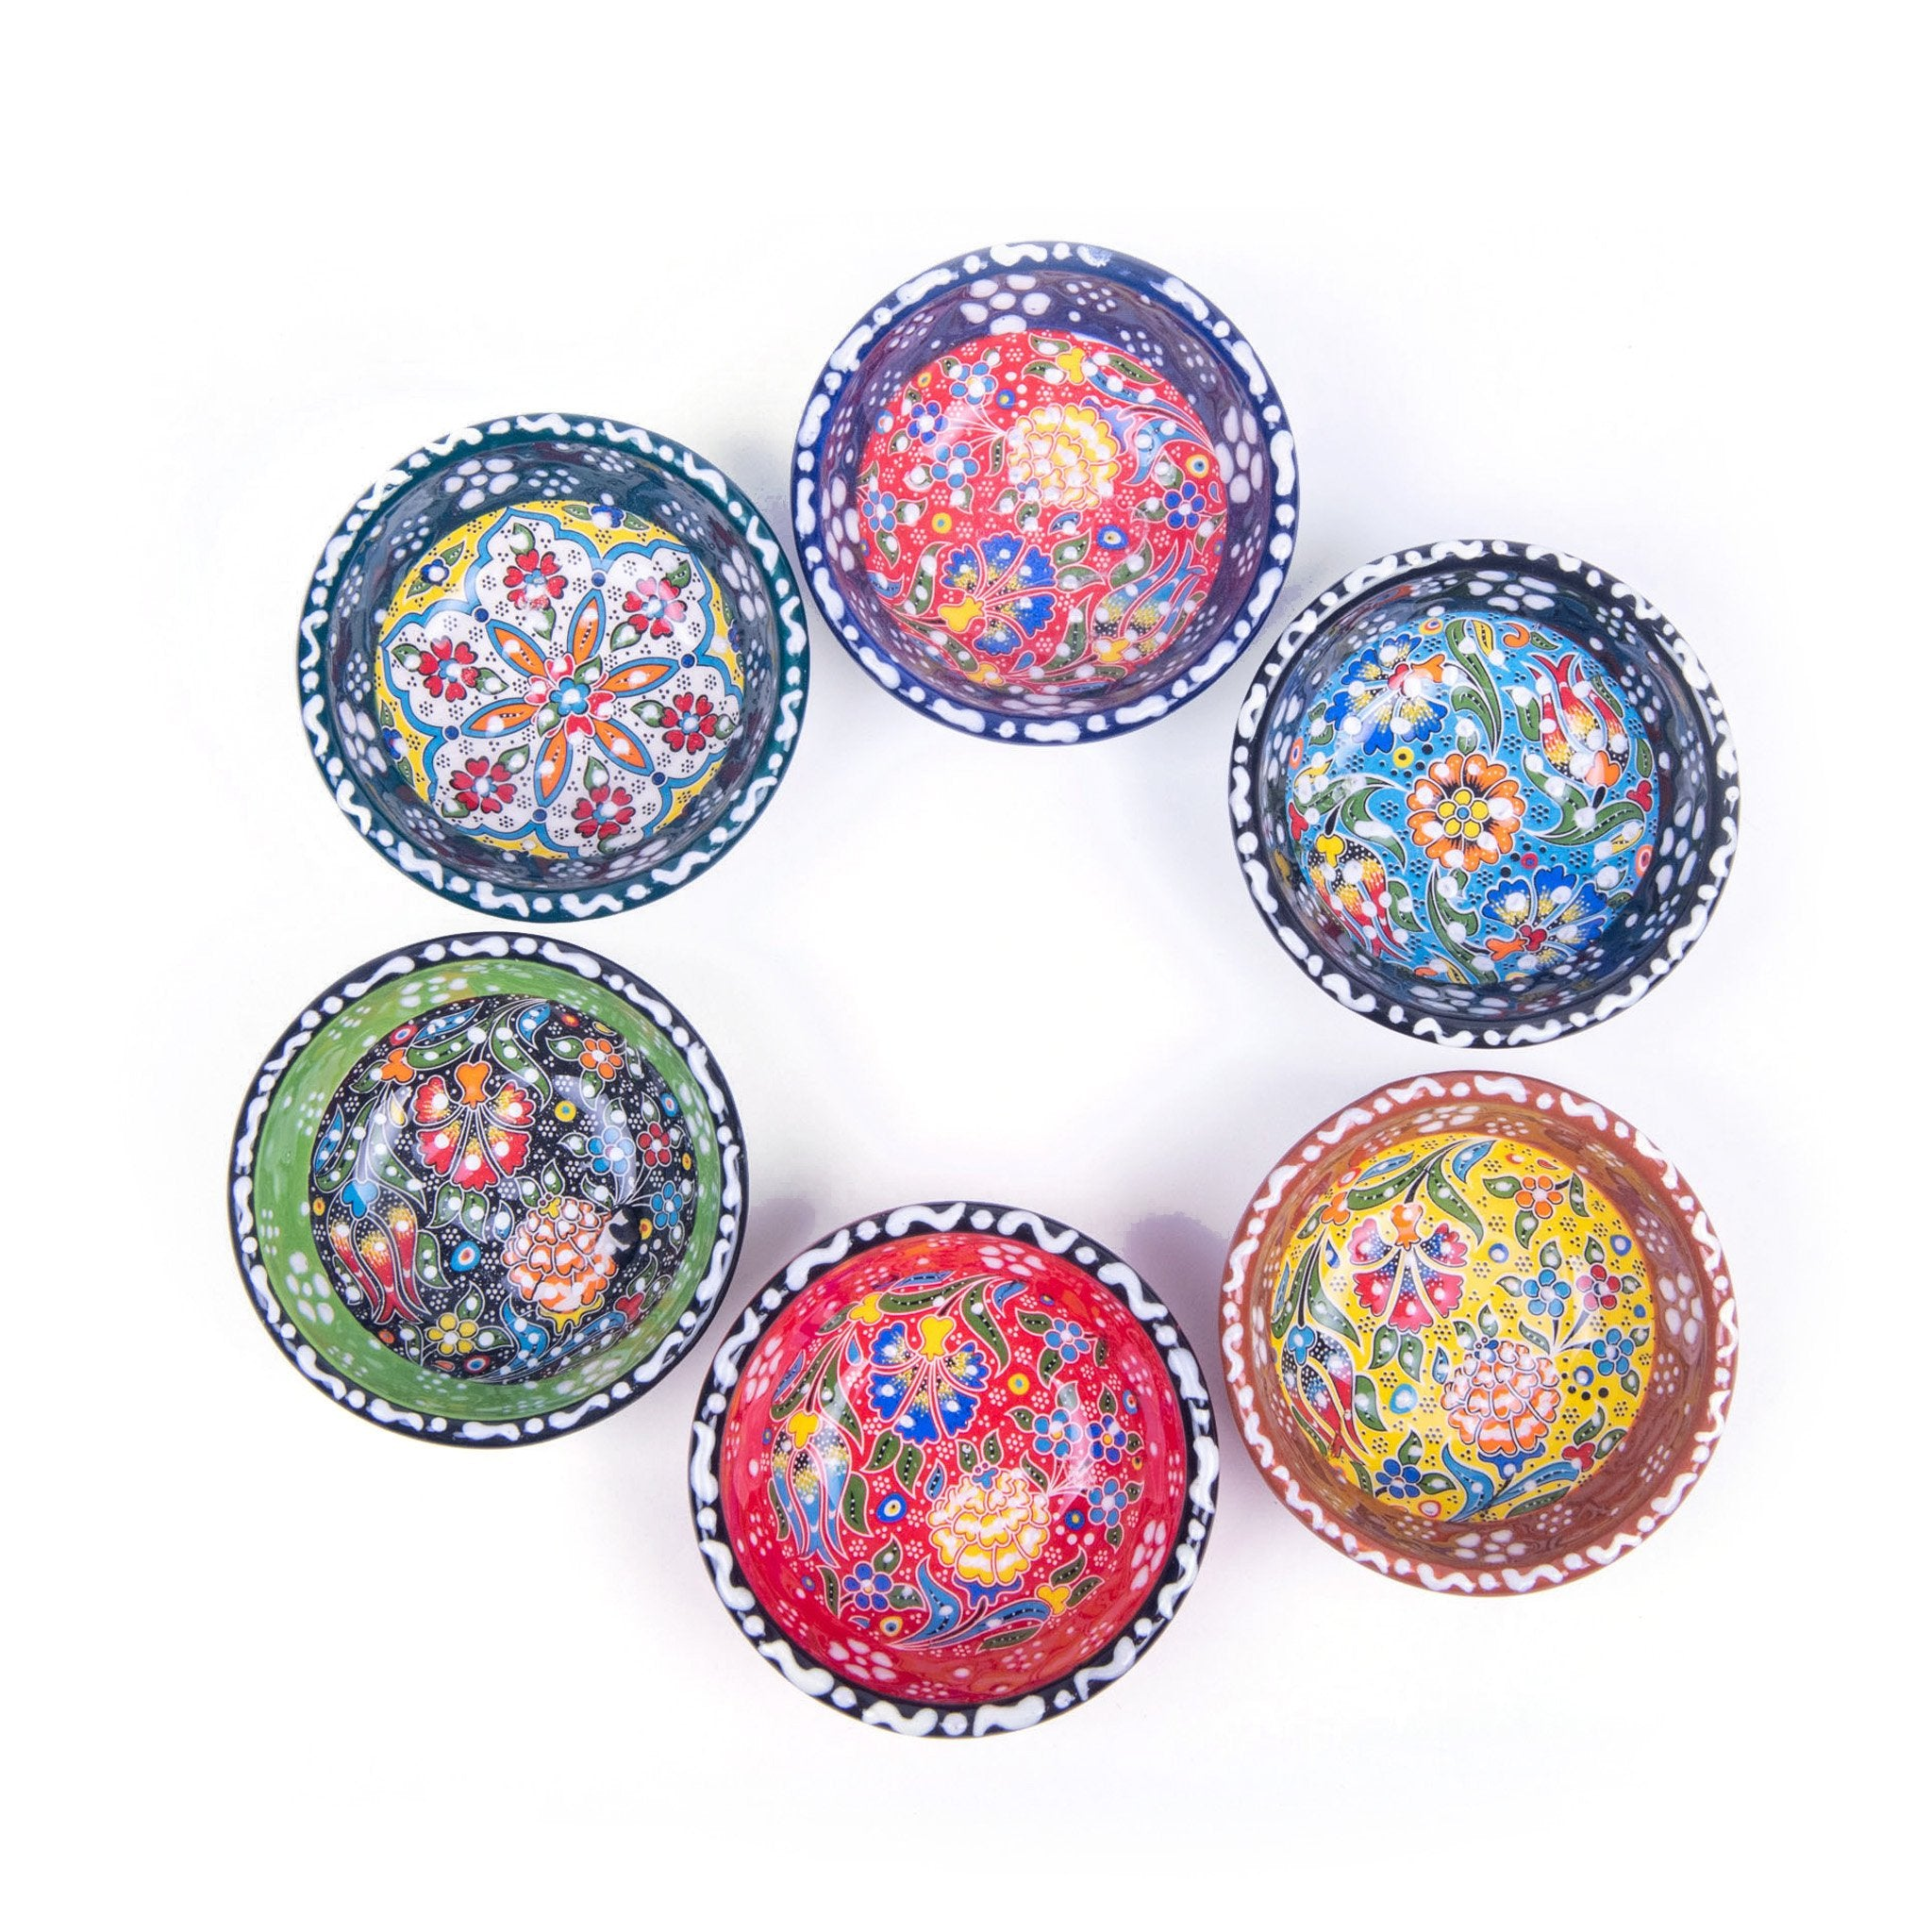 Turkish Ceramic Kutahya Design Handmade Flat Bowl Set Of Six - 8 cm (3.2'')-4